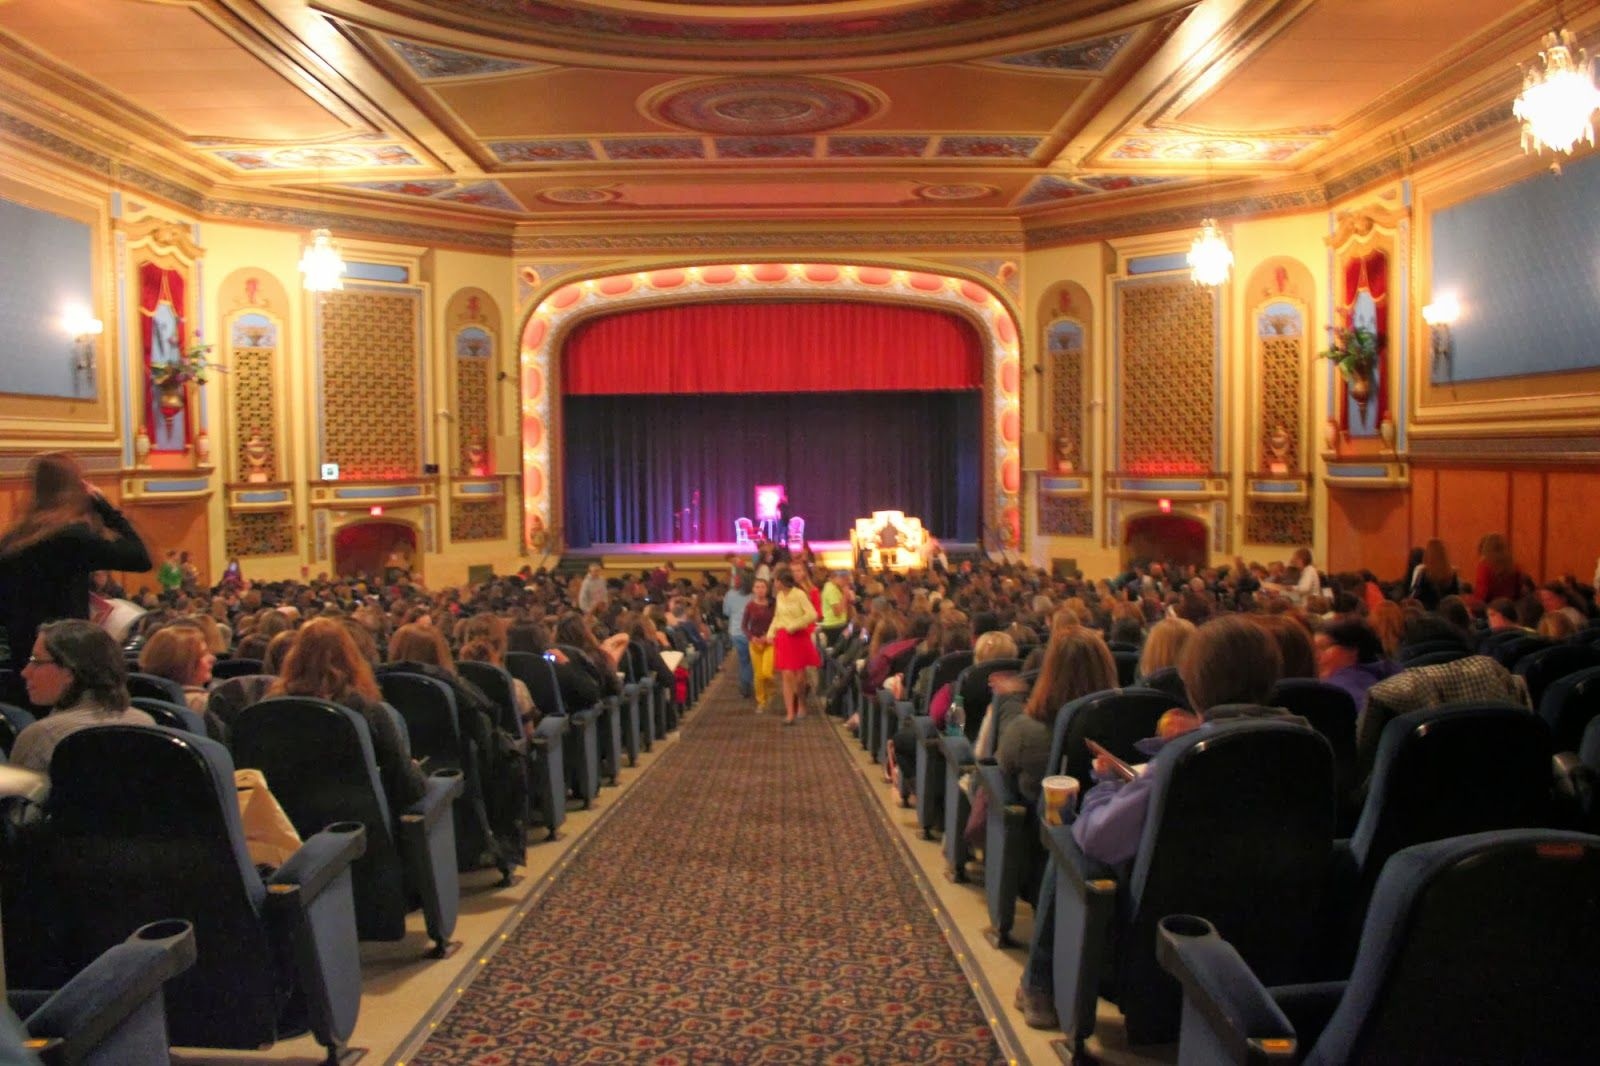 Tivoli Theater In Downers Grove Downers Grove Il Historical Photos Google Search Home Town